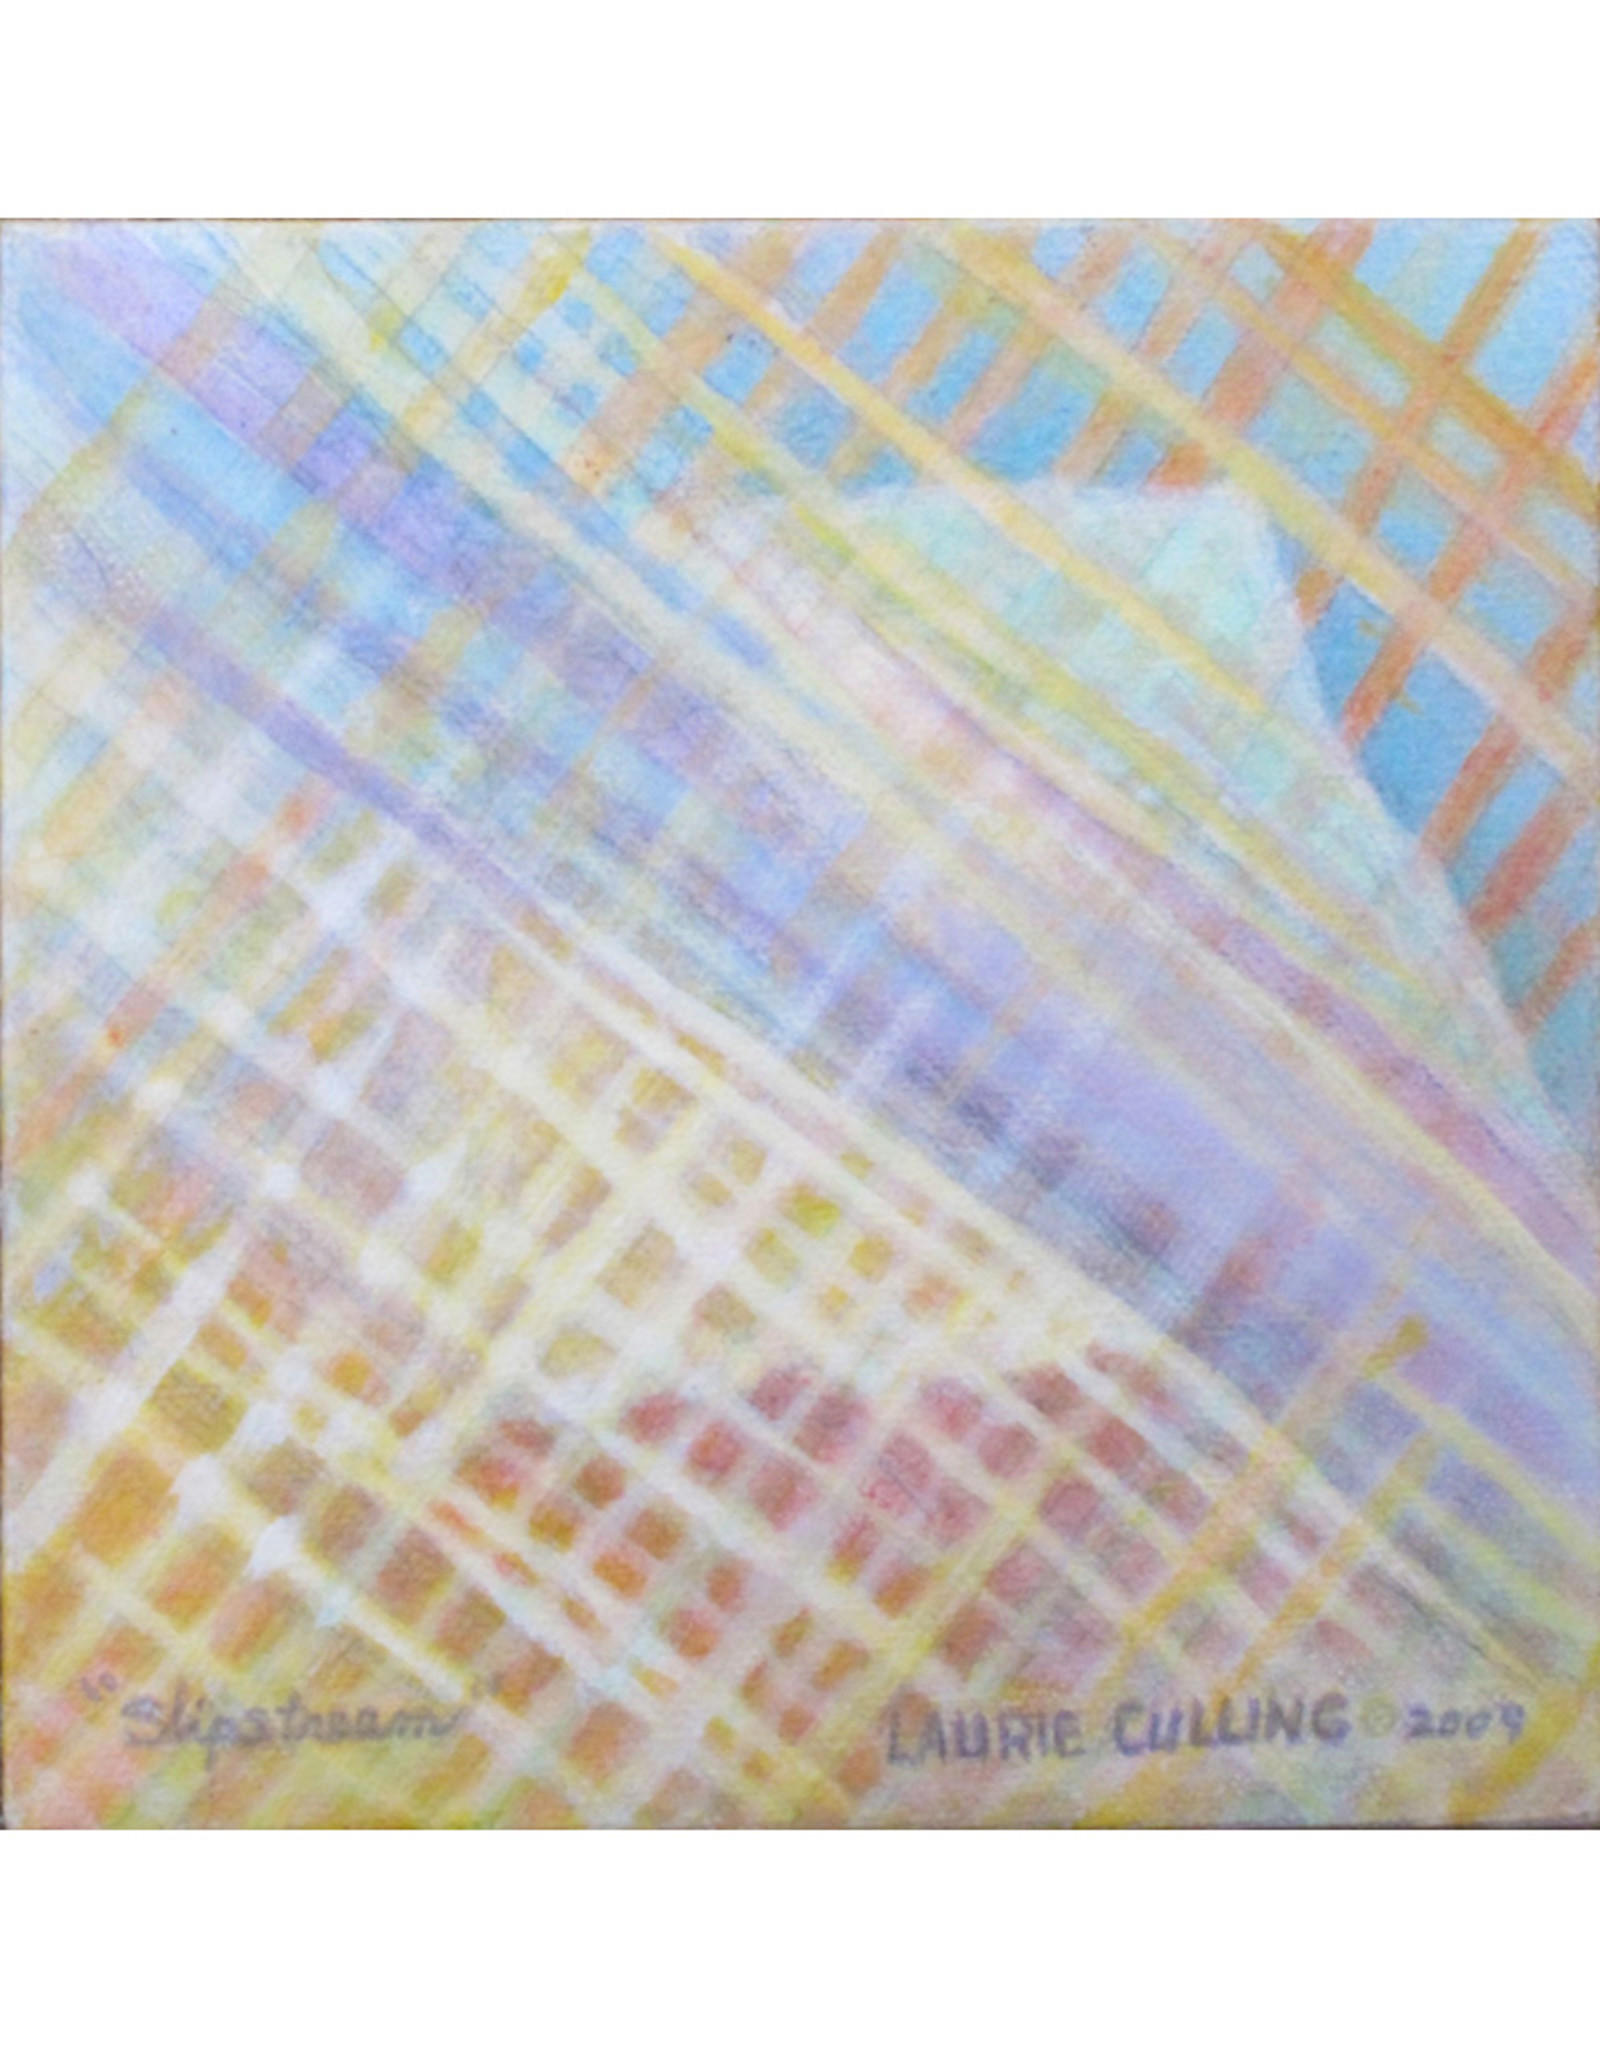 Laurie Culling Slipstream by Laurie Culling